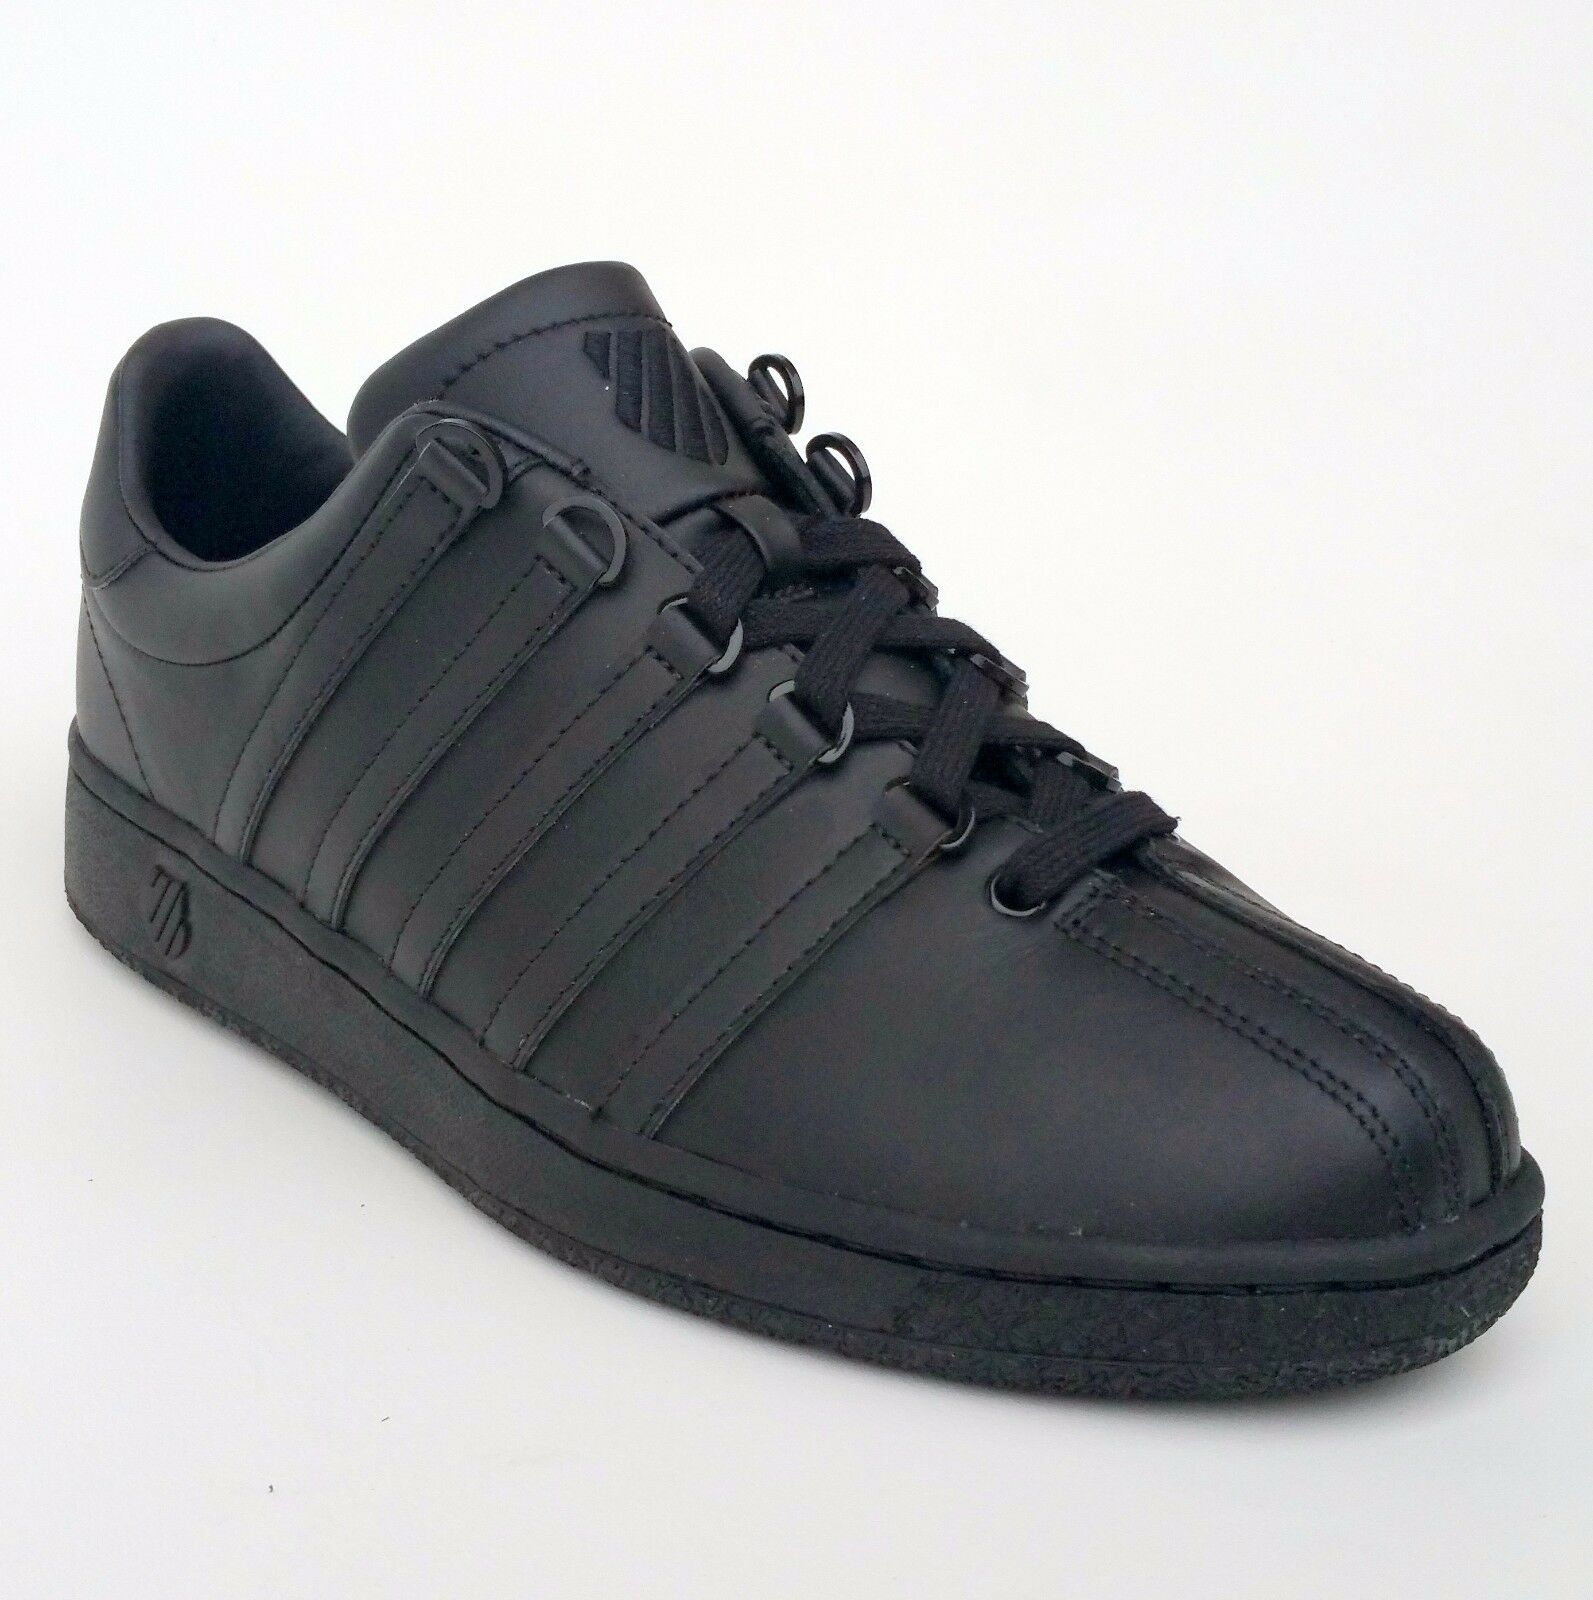 K Swiss Classic VN 03343001M Black Leather Mens shoes Fashion Sneakers Sizes